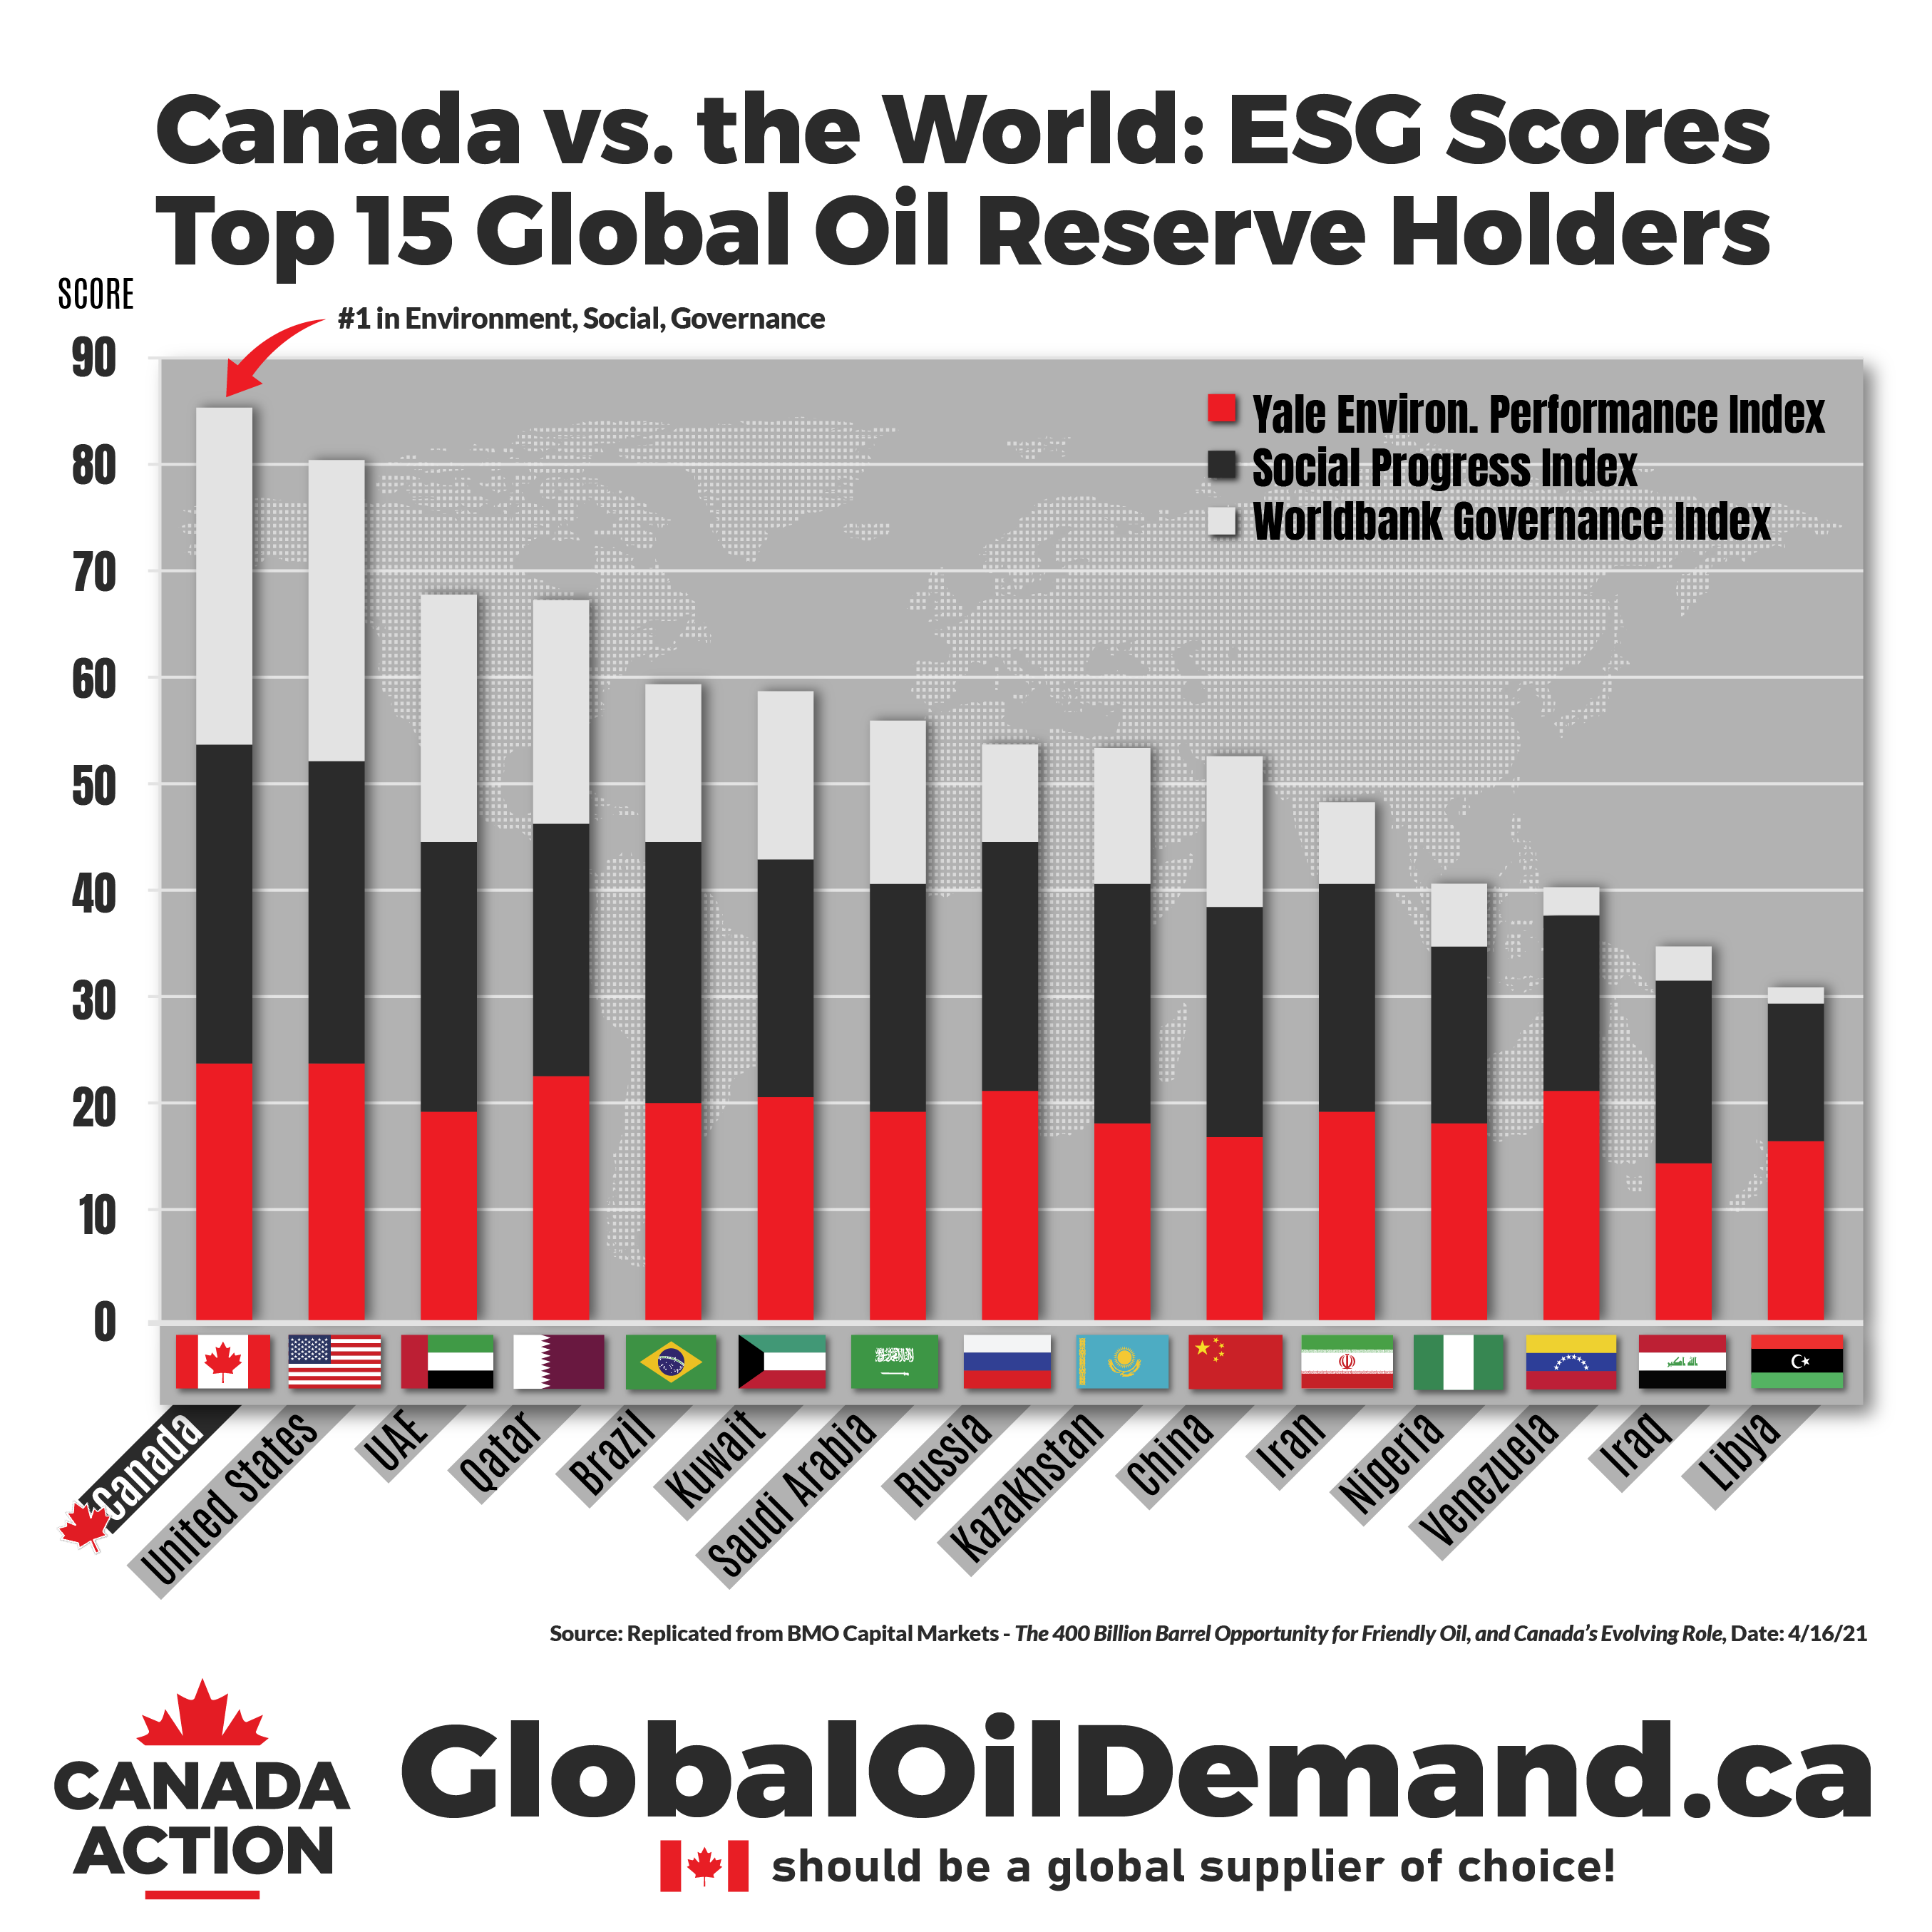 Canada Oil and Gas ESG Record of Top Oil Reserve Holders